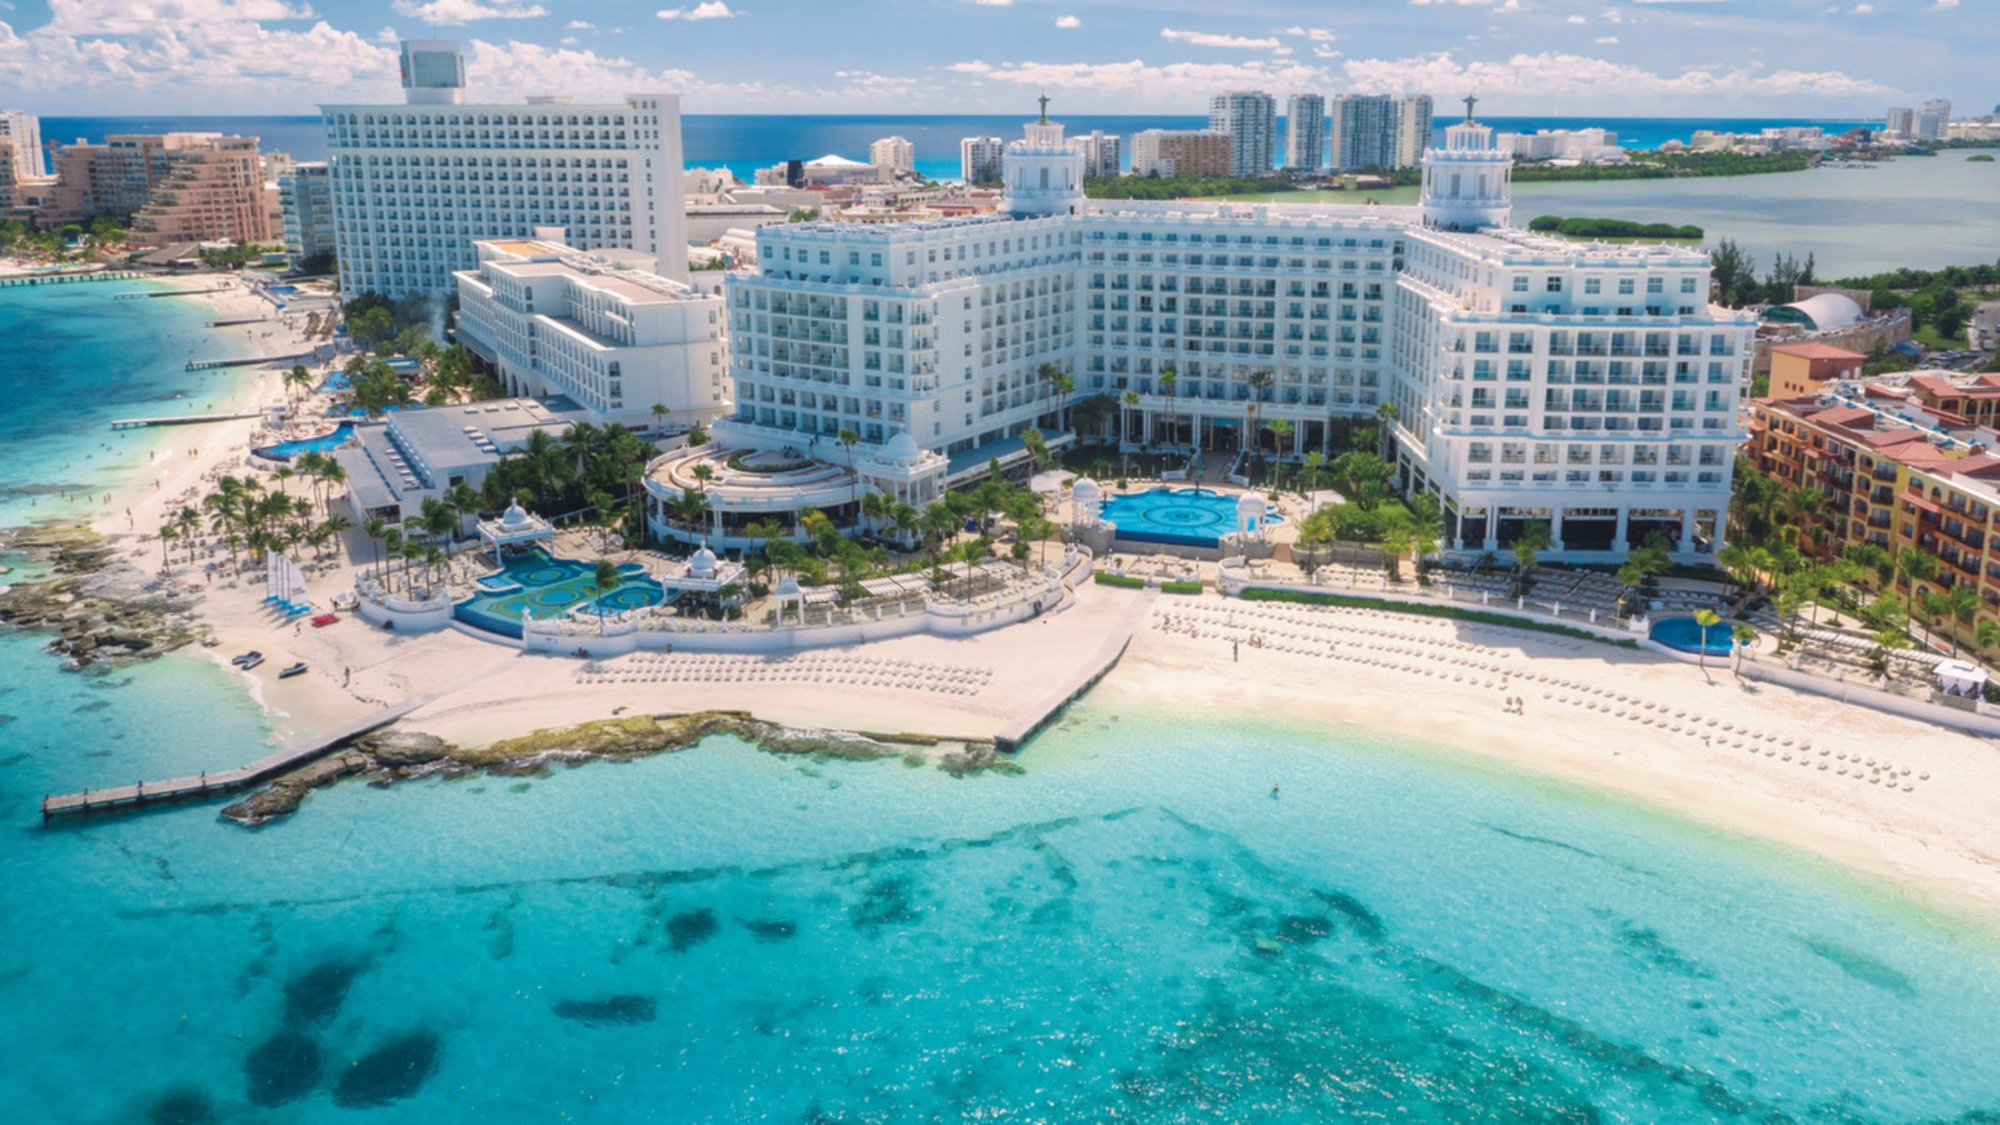 hotel riu palace las americas from  216 cancun mexico all